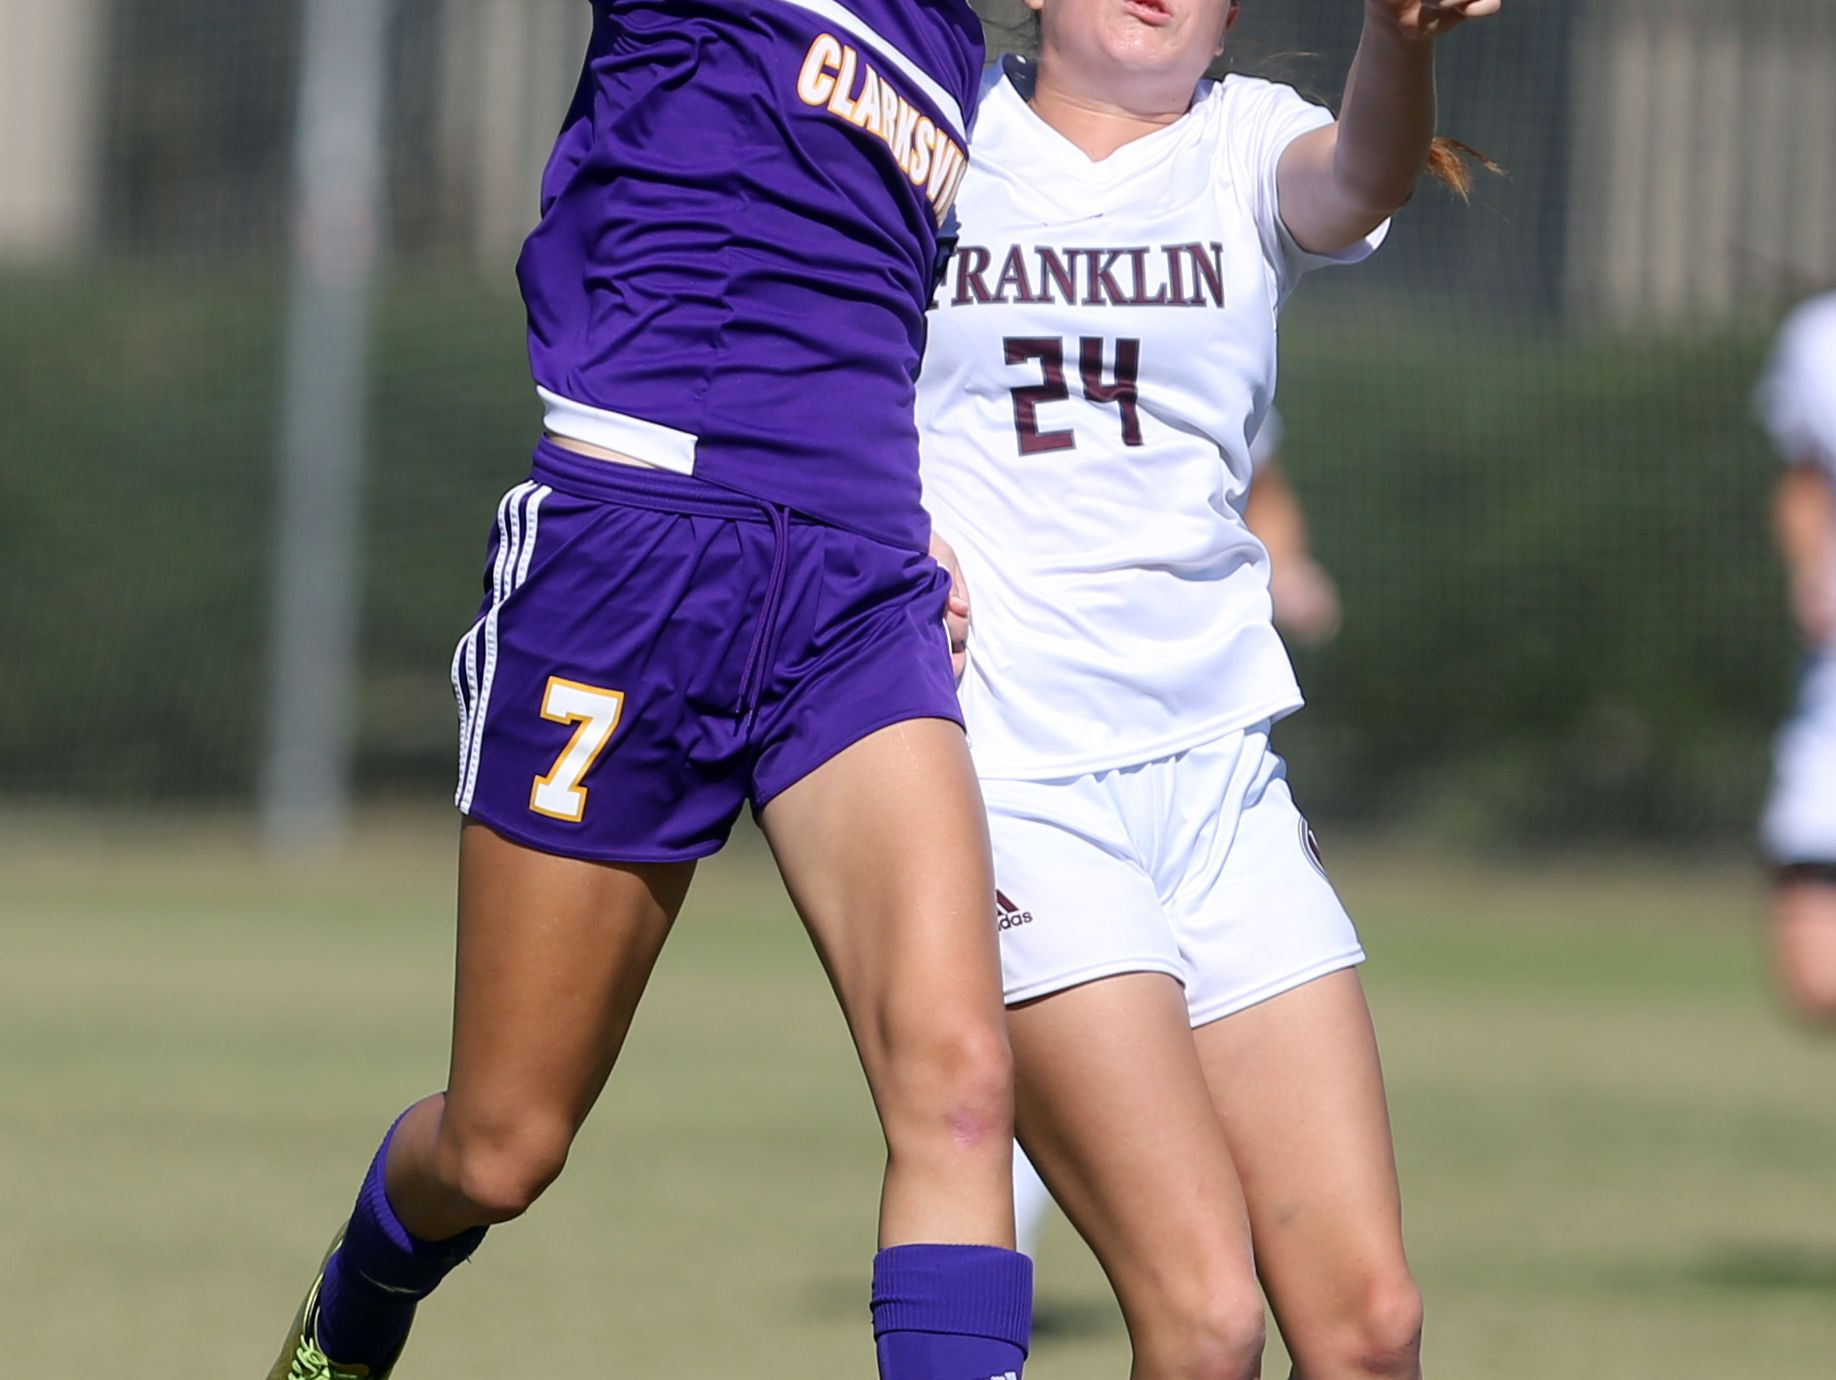 Tennessee Barkalow of Clarksville and Peyton DePriest of Franklin compete for the ball during their Class AAA Soccer Championship game Saturday October 29, 2016 at Richard Siegel Soccer Complex in Murfreesboro.